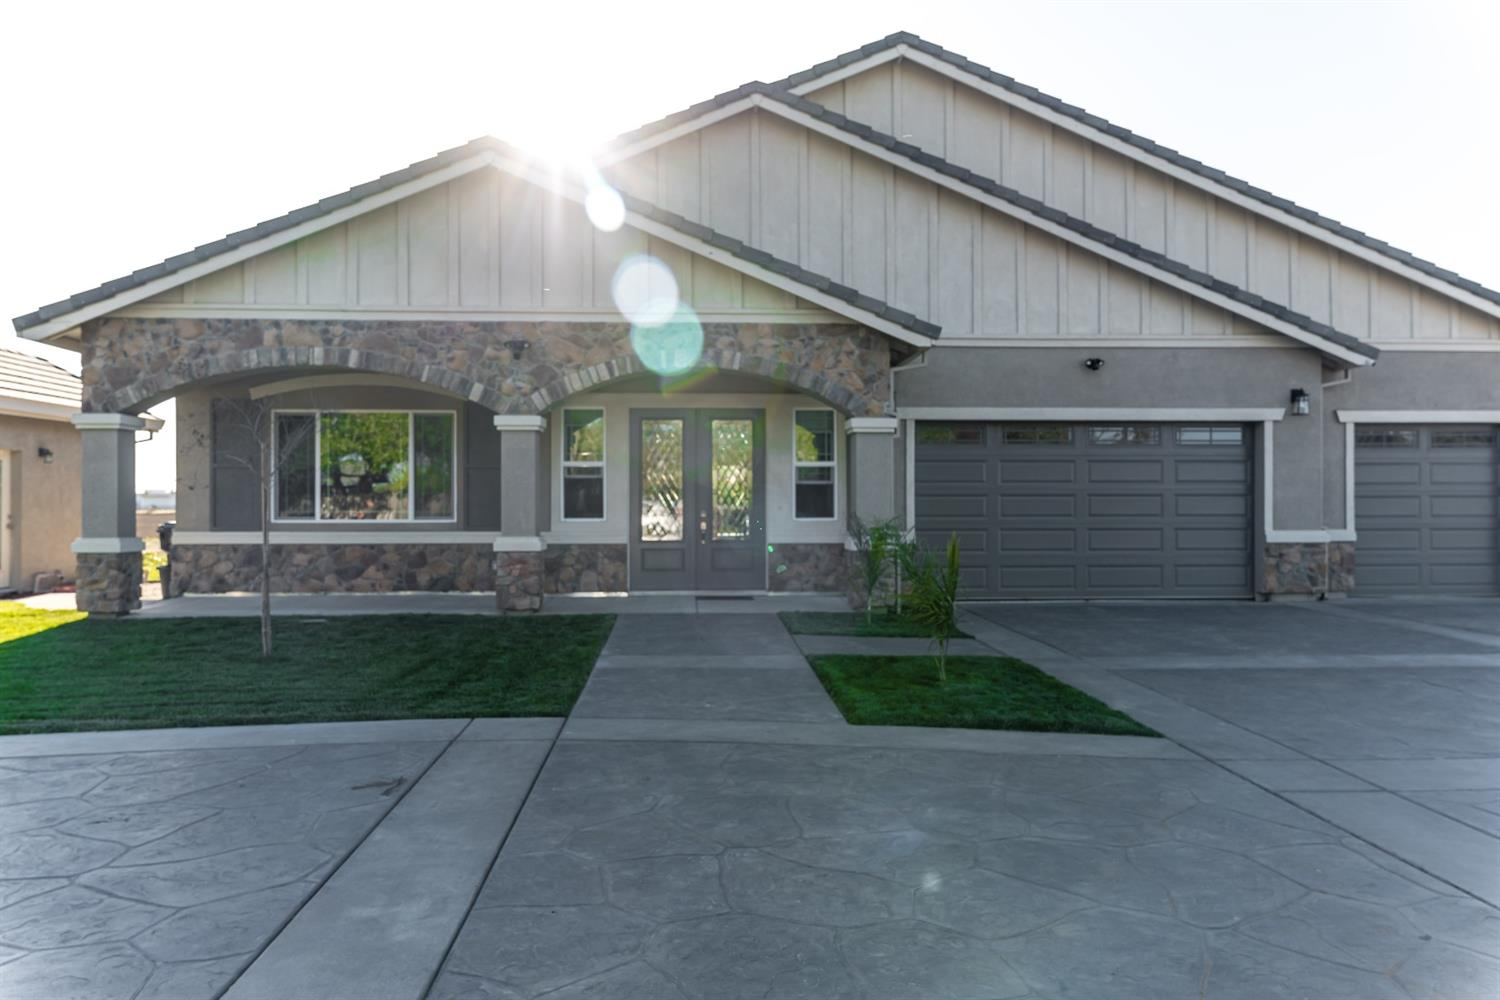 Photo of 333 S Austin Road, Manteca, CA 95336